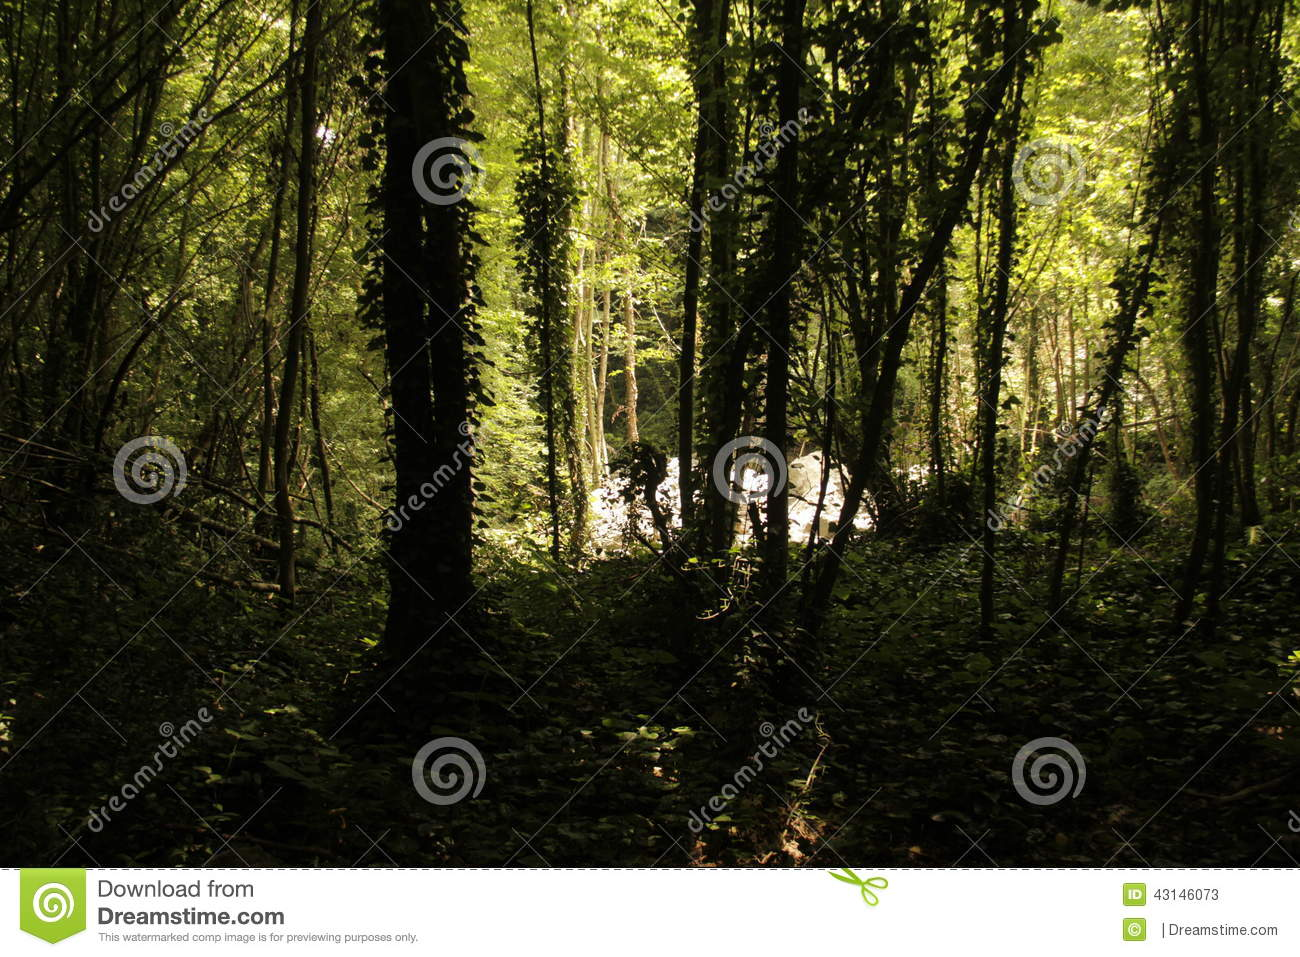 Forrest trees shadows